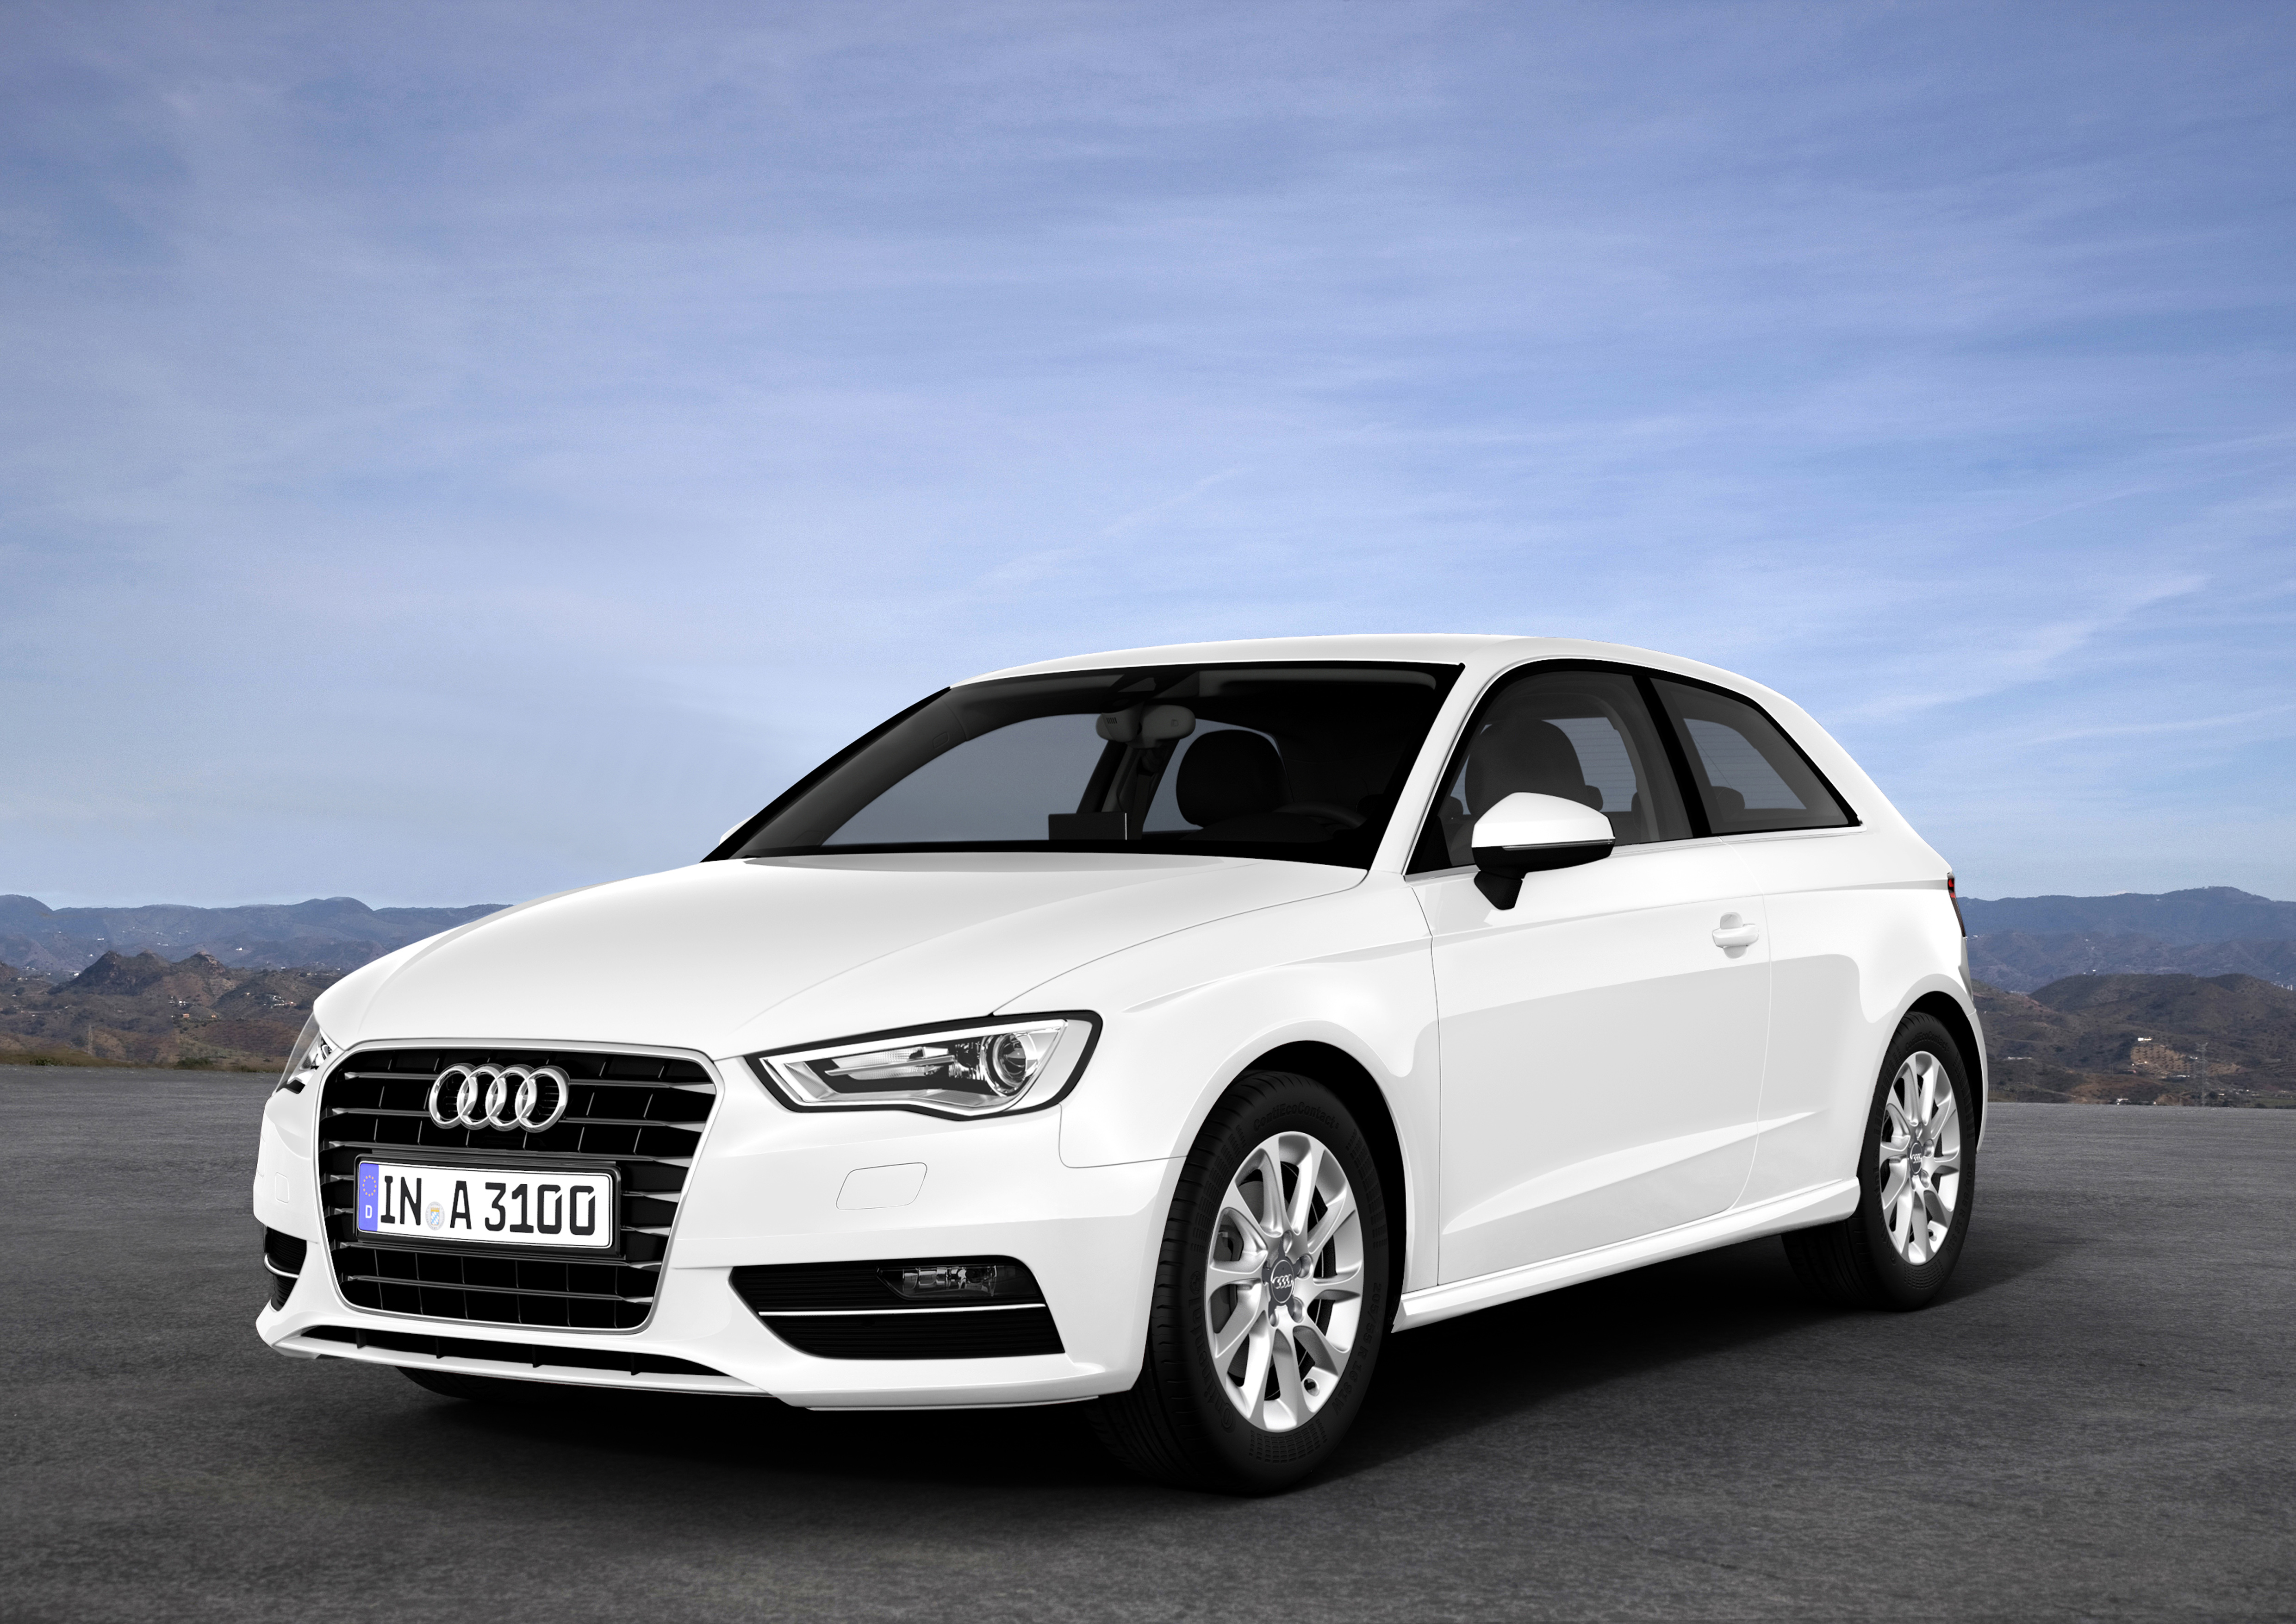 audi a3 pictures #5